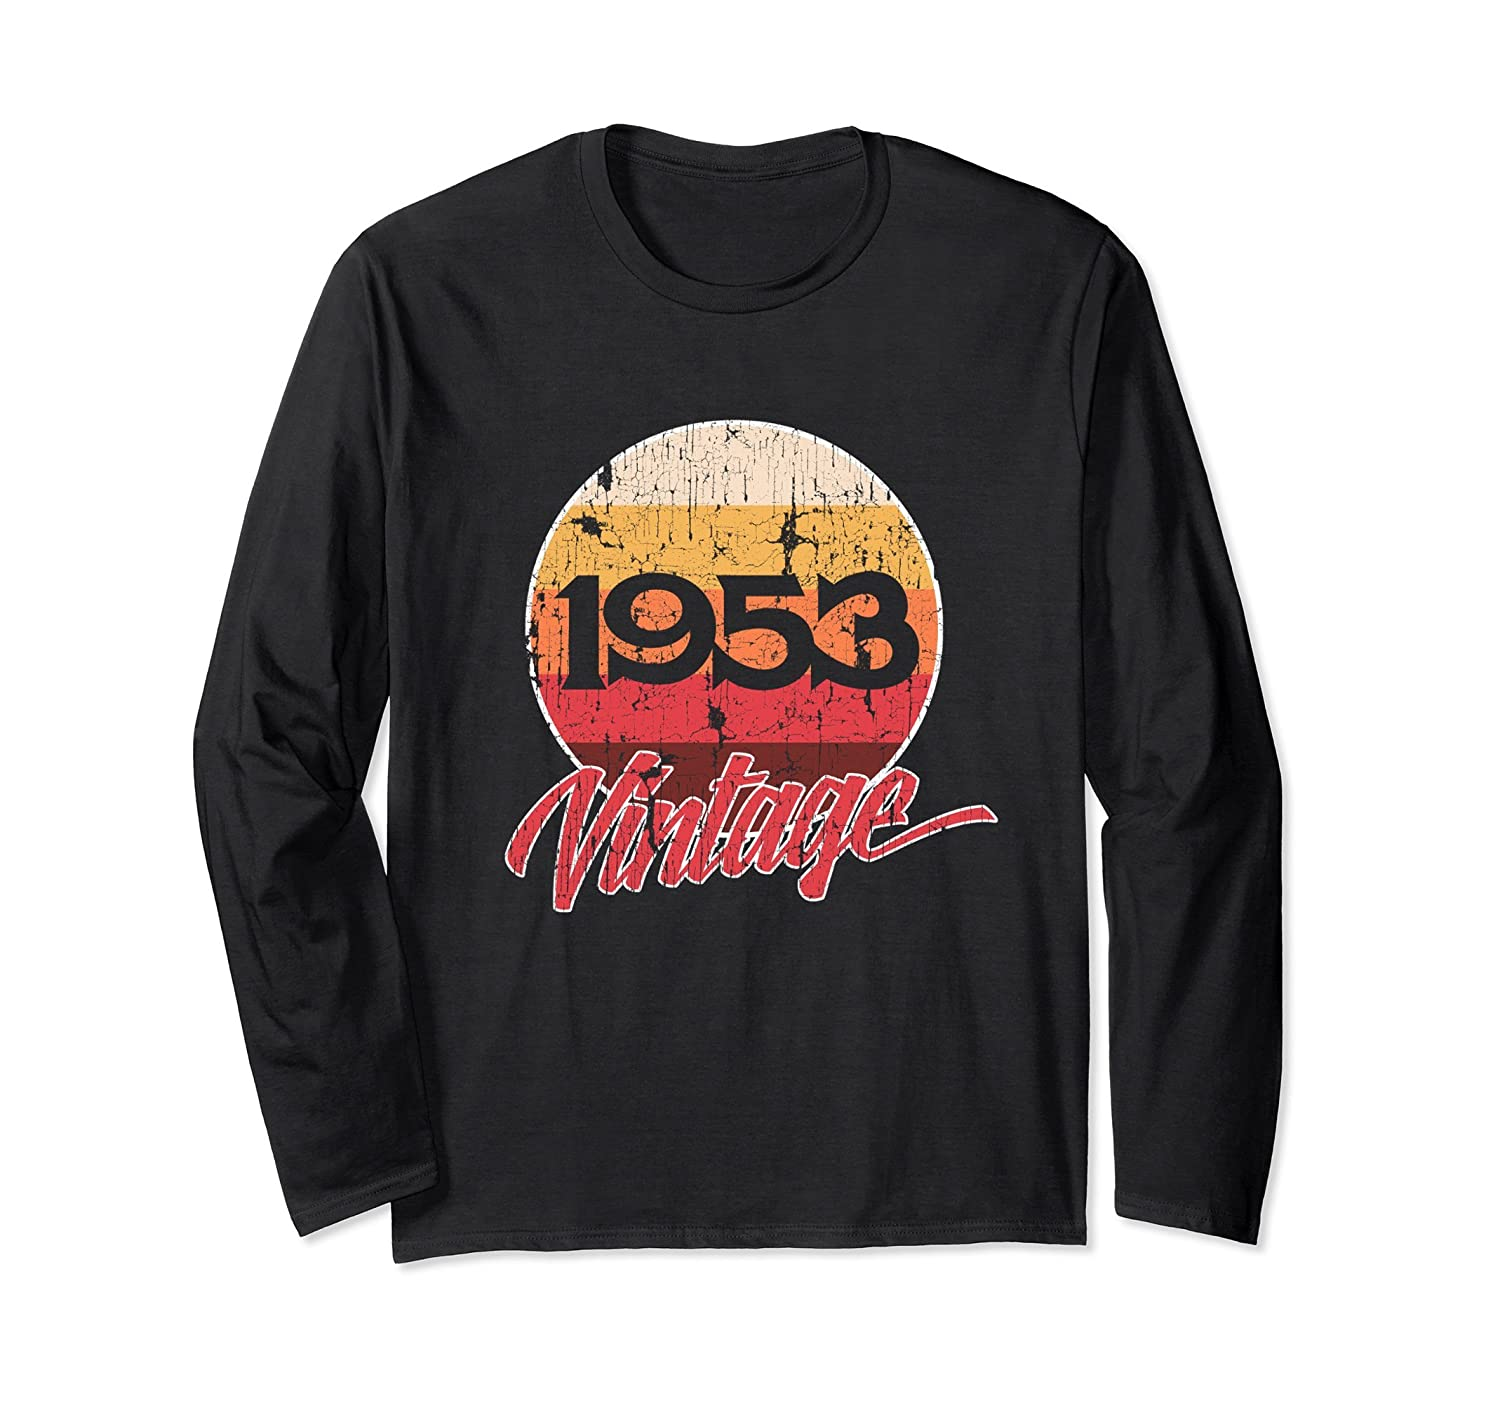 Vintage 1953 50s 65th Birthday Shirt For Mom Dad Uncle Anz